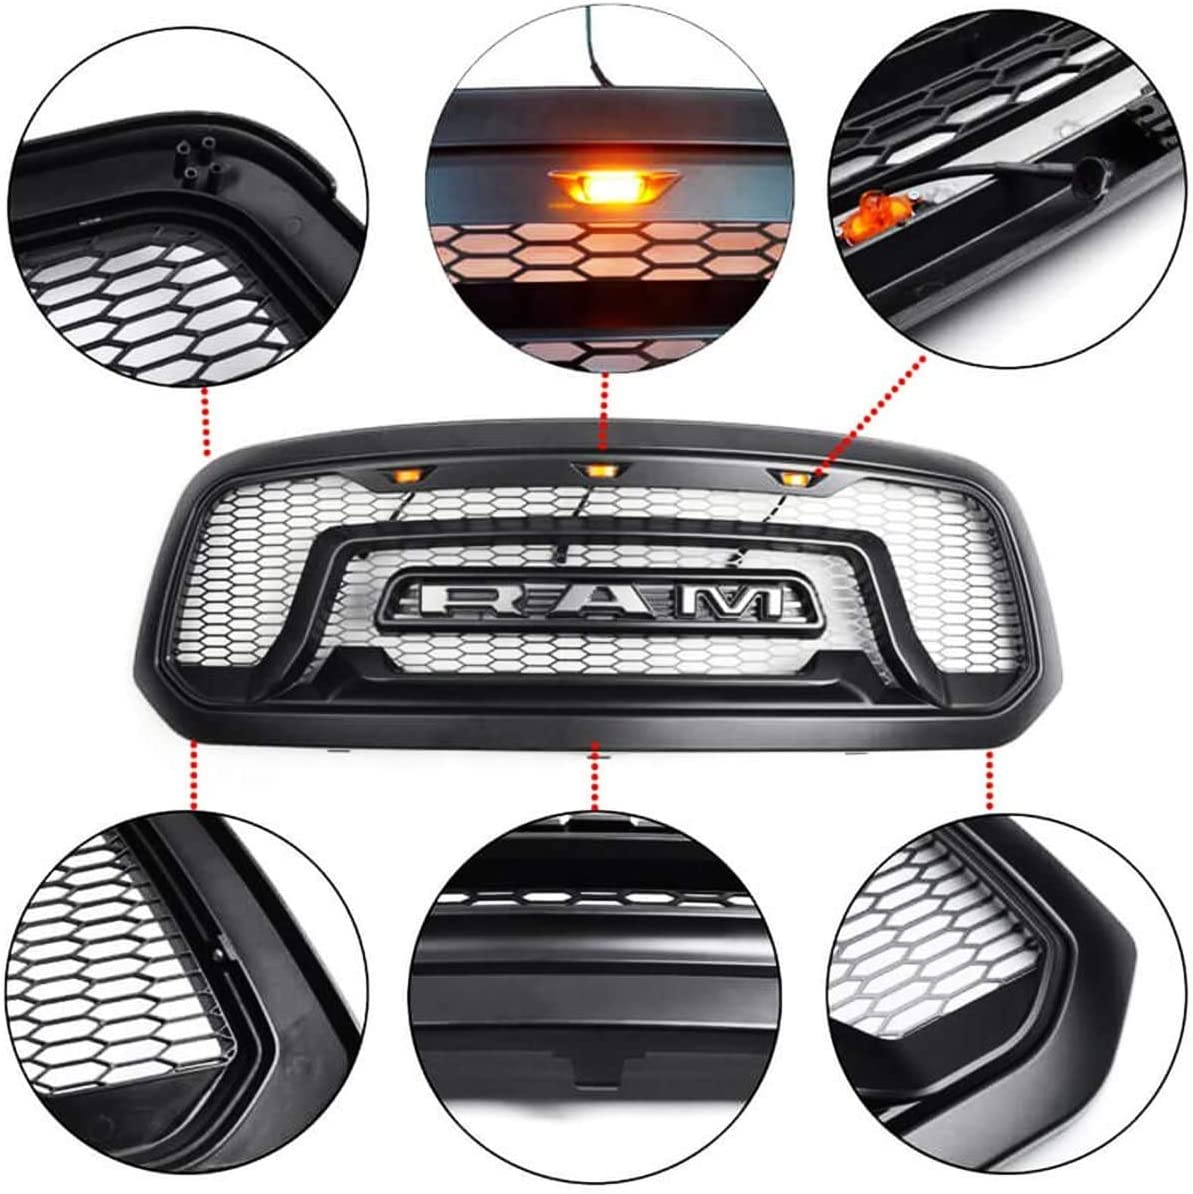 Replacement Front Grille Upper Grill Rebel Style Mesh Grill Honeycomb Bumper with Three LED Amber Lights for 2013-2018